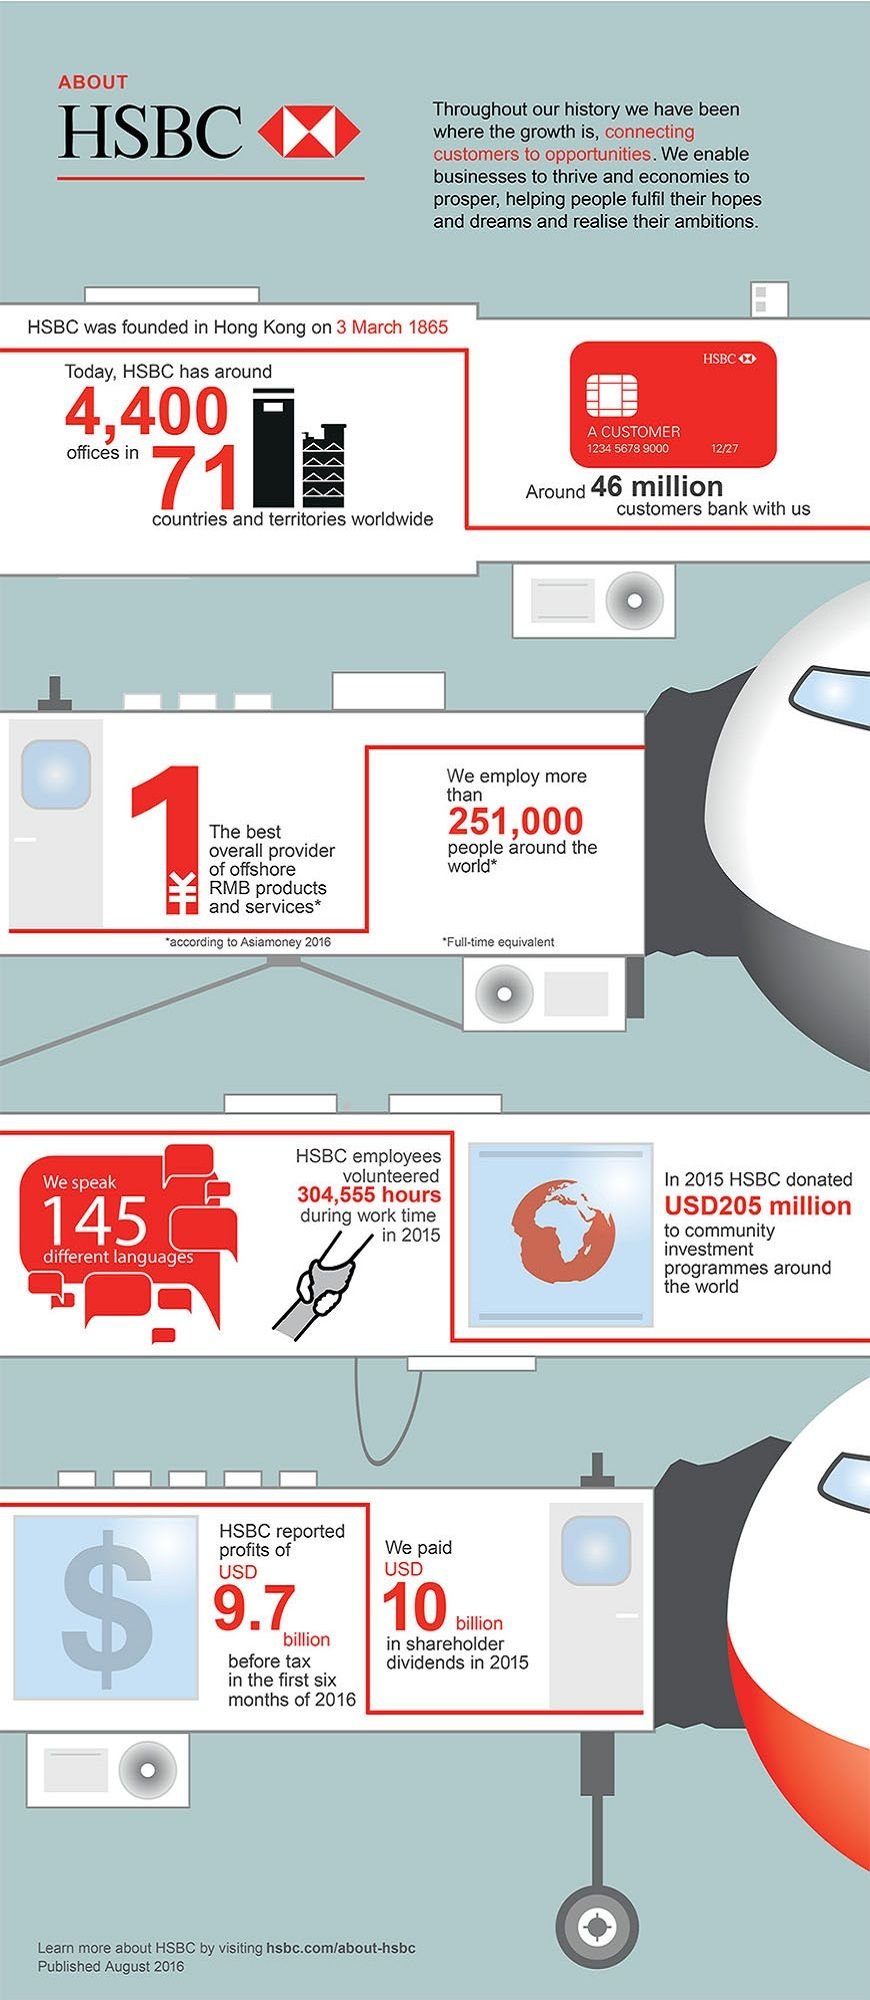 HSBC in numbers - About HSBC | HSBC Brunei | HSBC | Brunei, Numbers